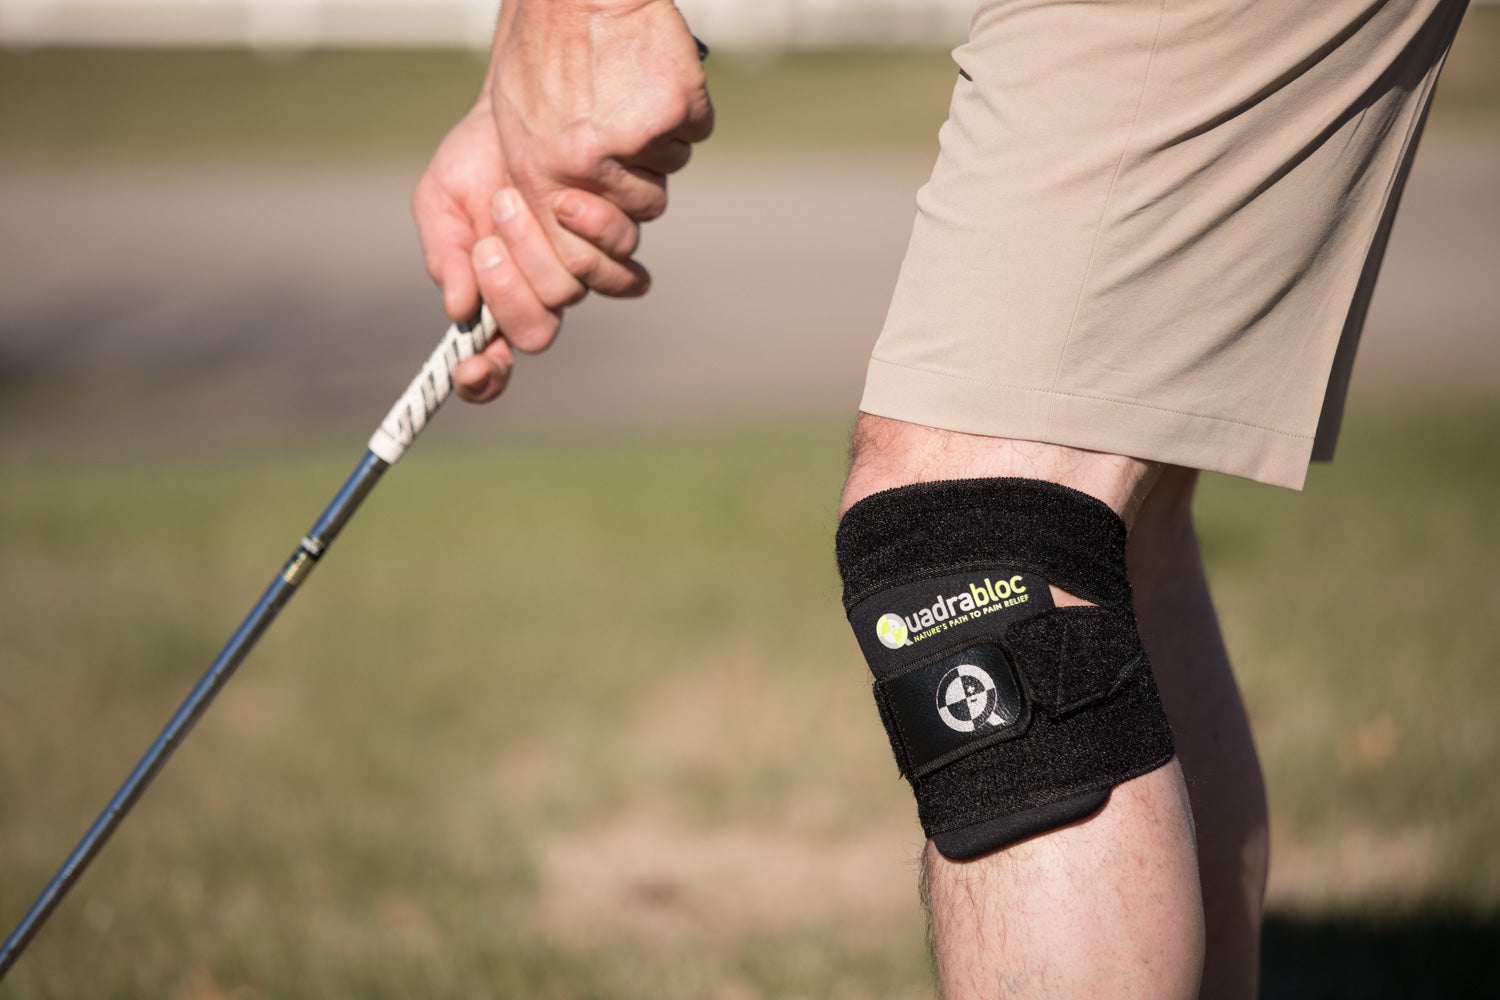 Quadrobloc provides natural pain relief for knee pain